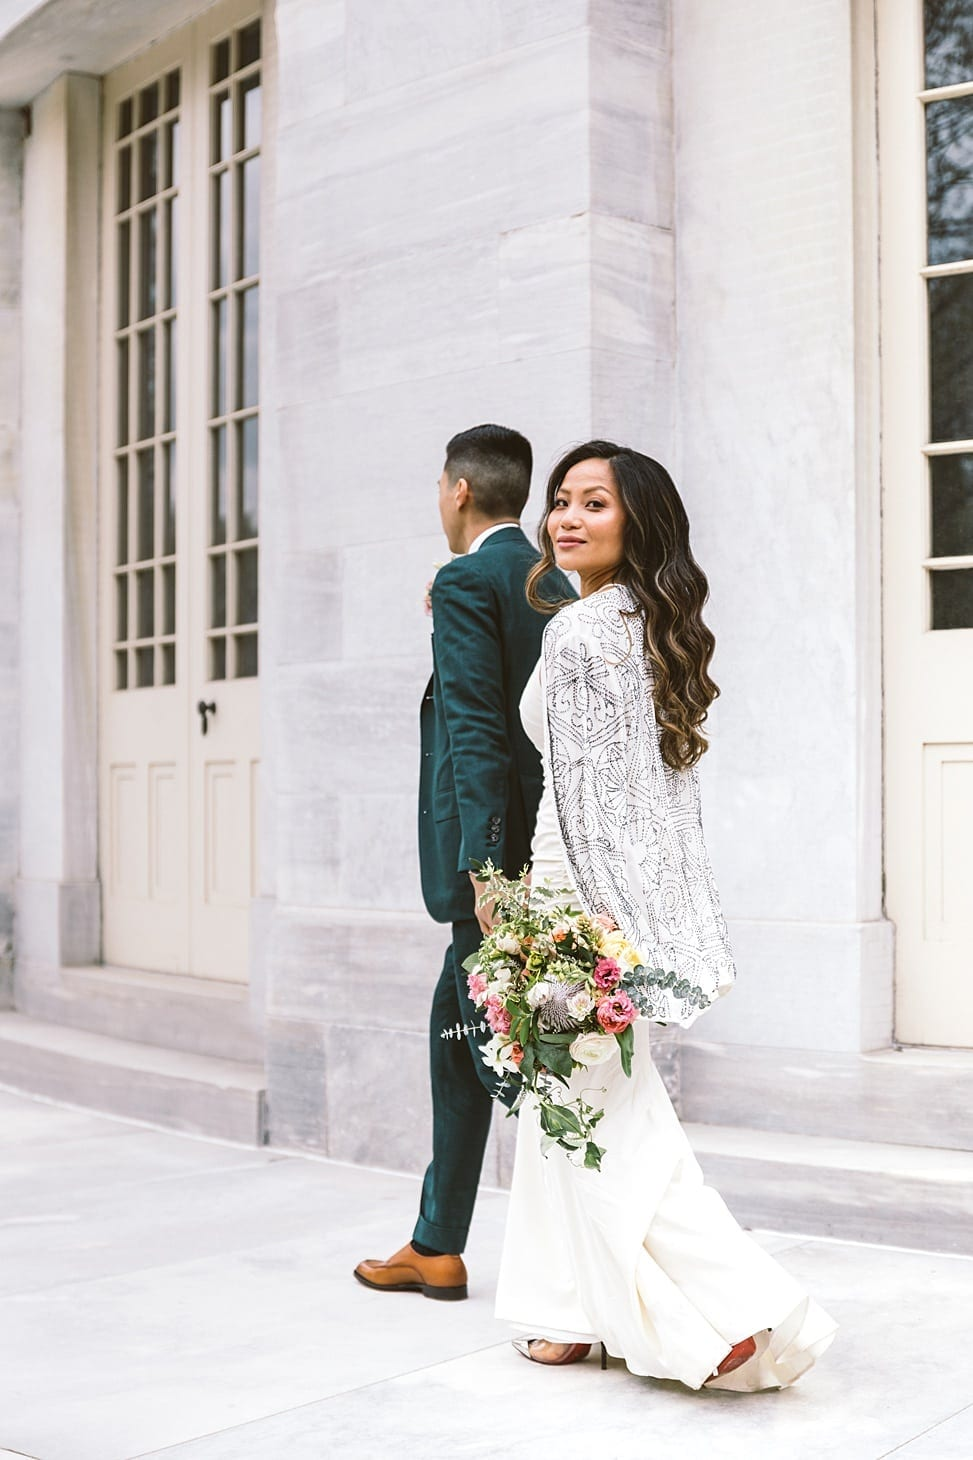 30 Winter Wedding Ideas That Are Gorgeousaf A Practical Wedding,Long Sleeve Wedding Dresses Without Lace